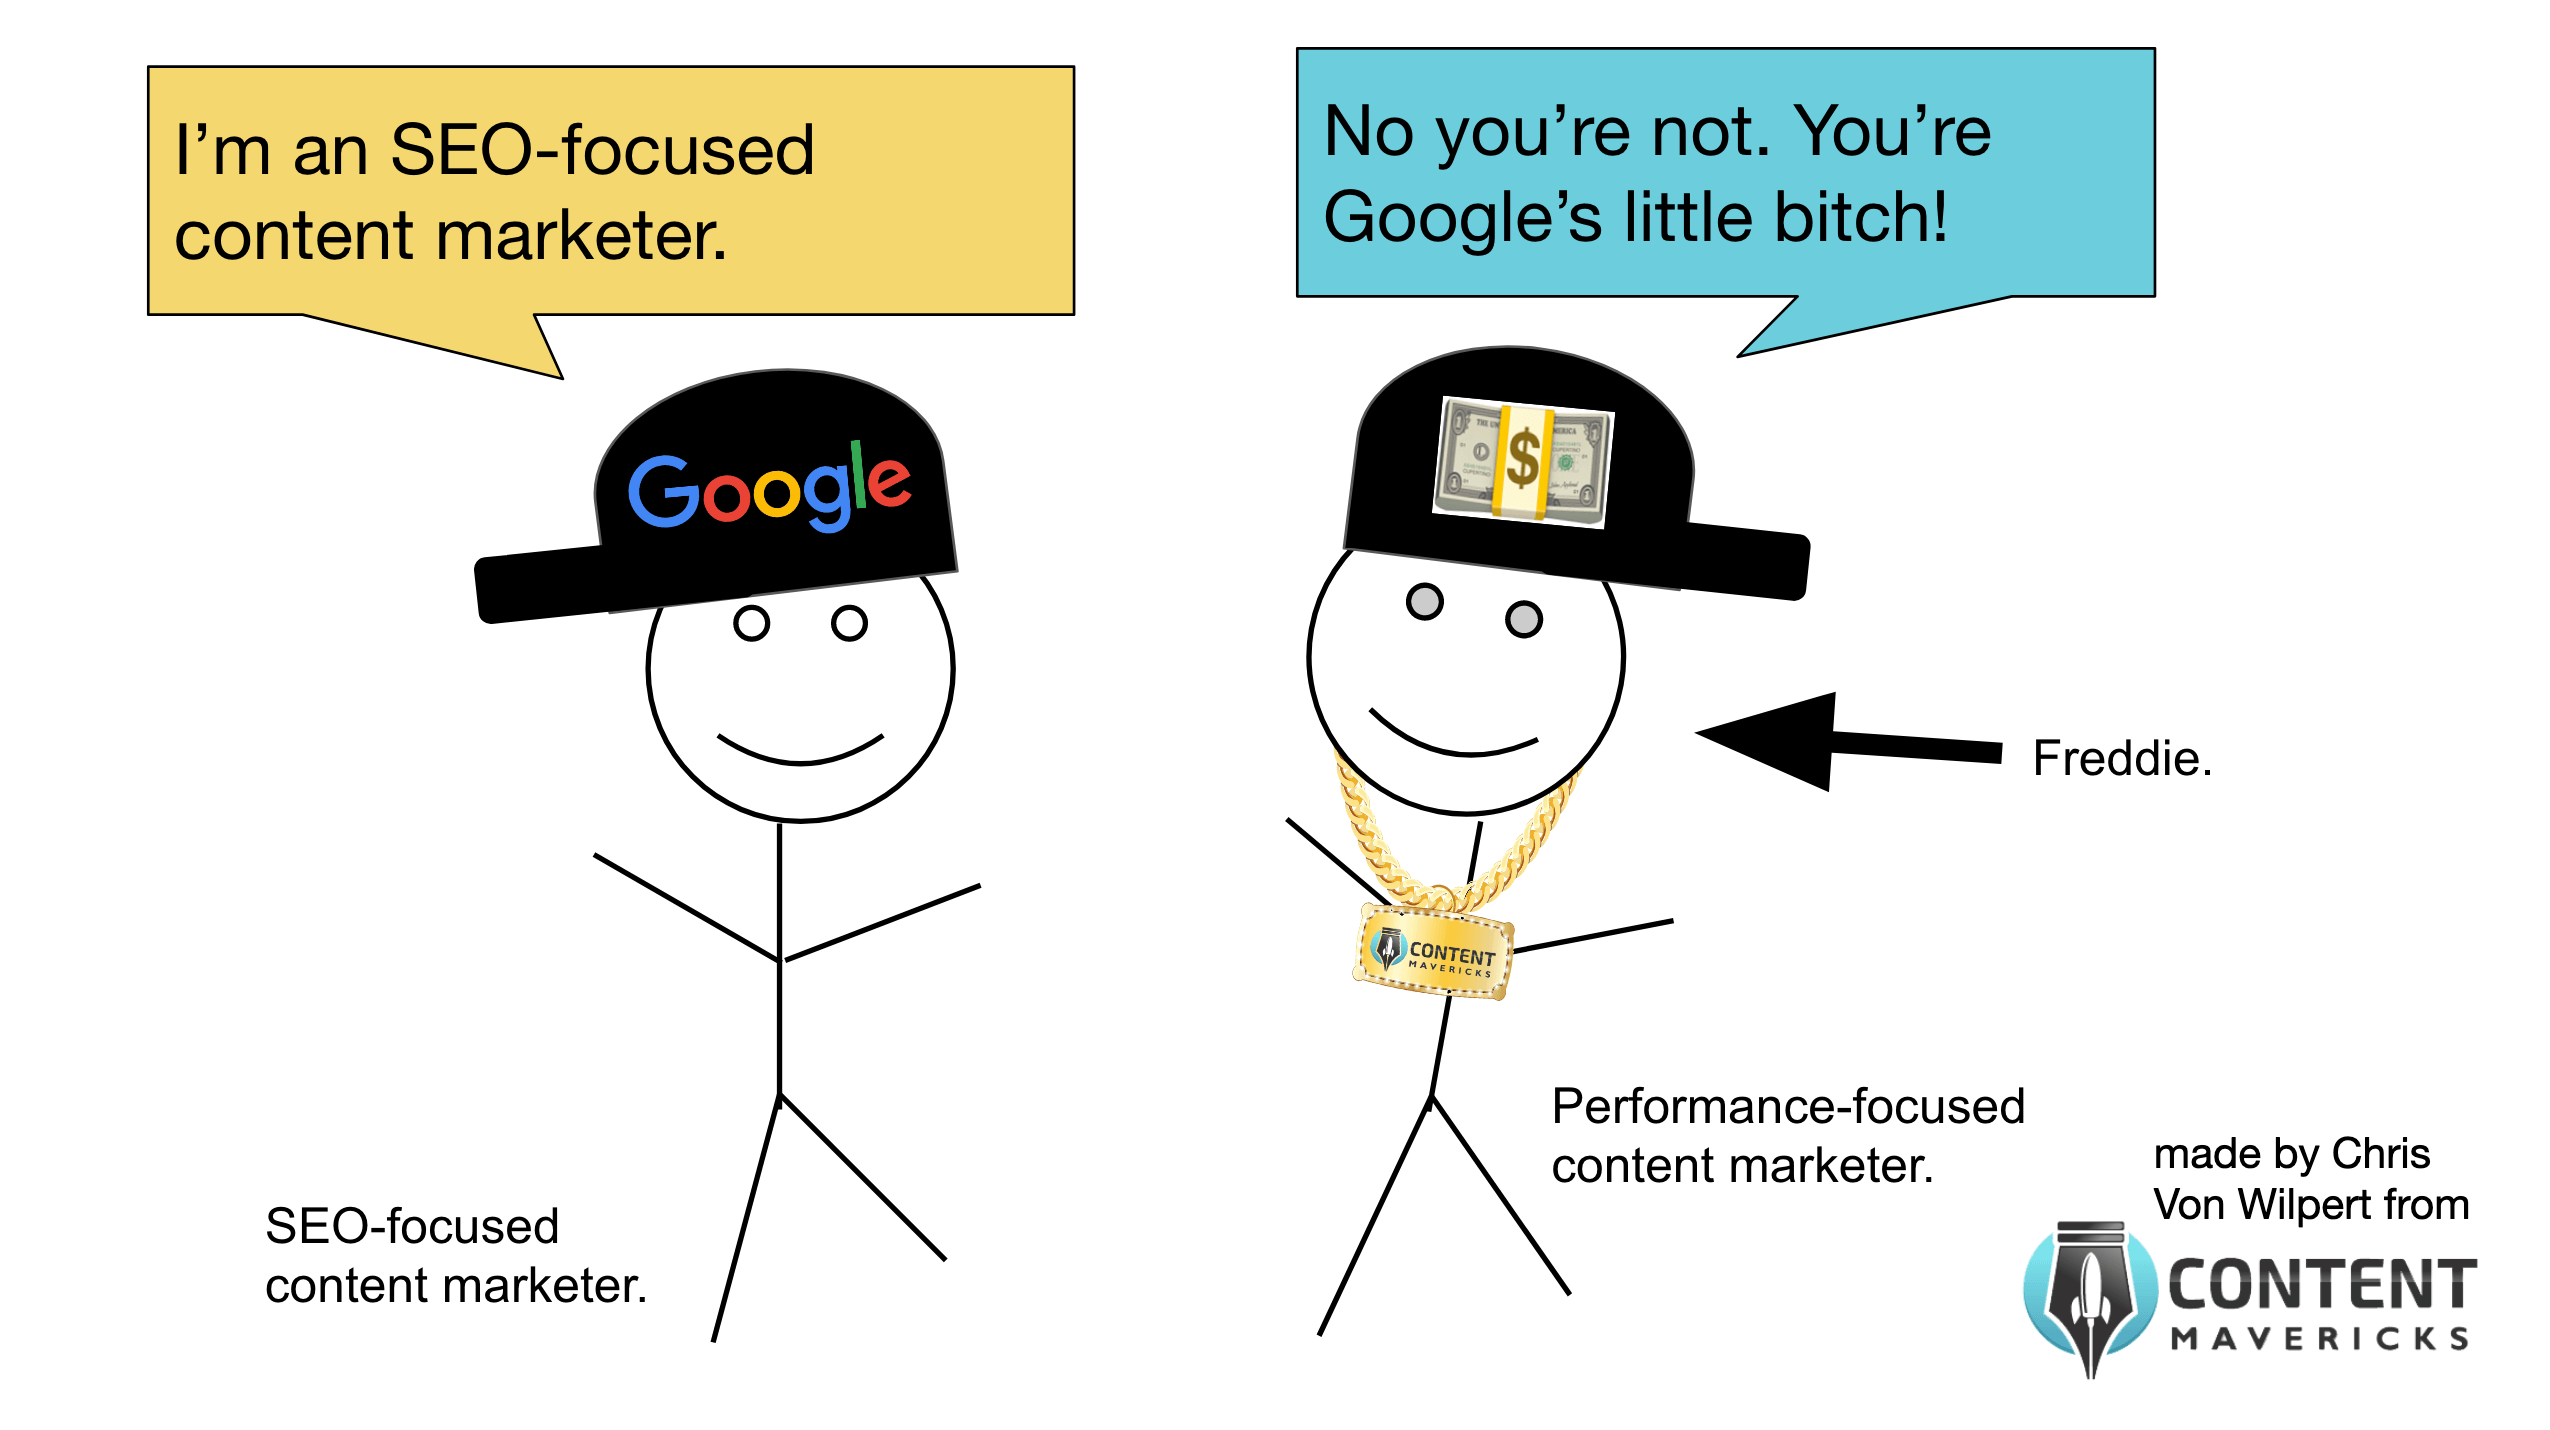 seo focused content marketer image